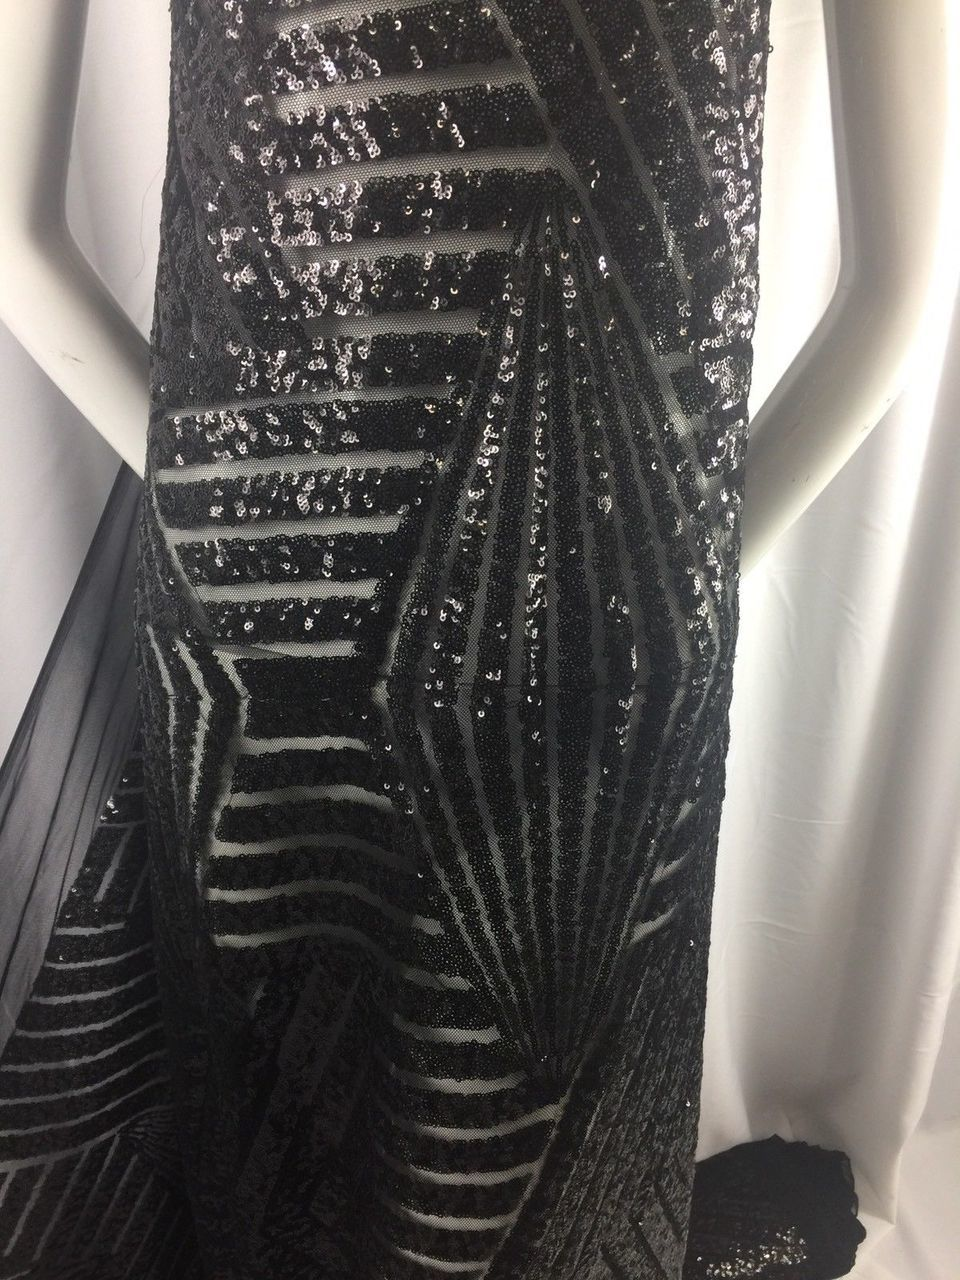 Black Geometric Sequins Embroider On A Mesh.wedding/bridal/nightgown/prom/fabric - KINGDOM OF FABRICS